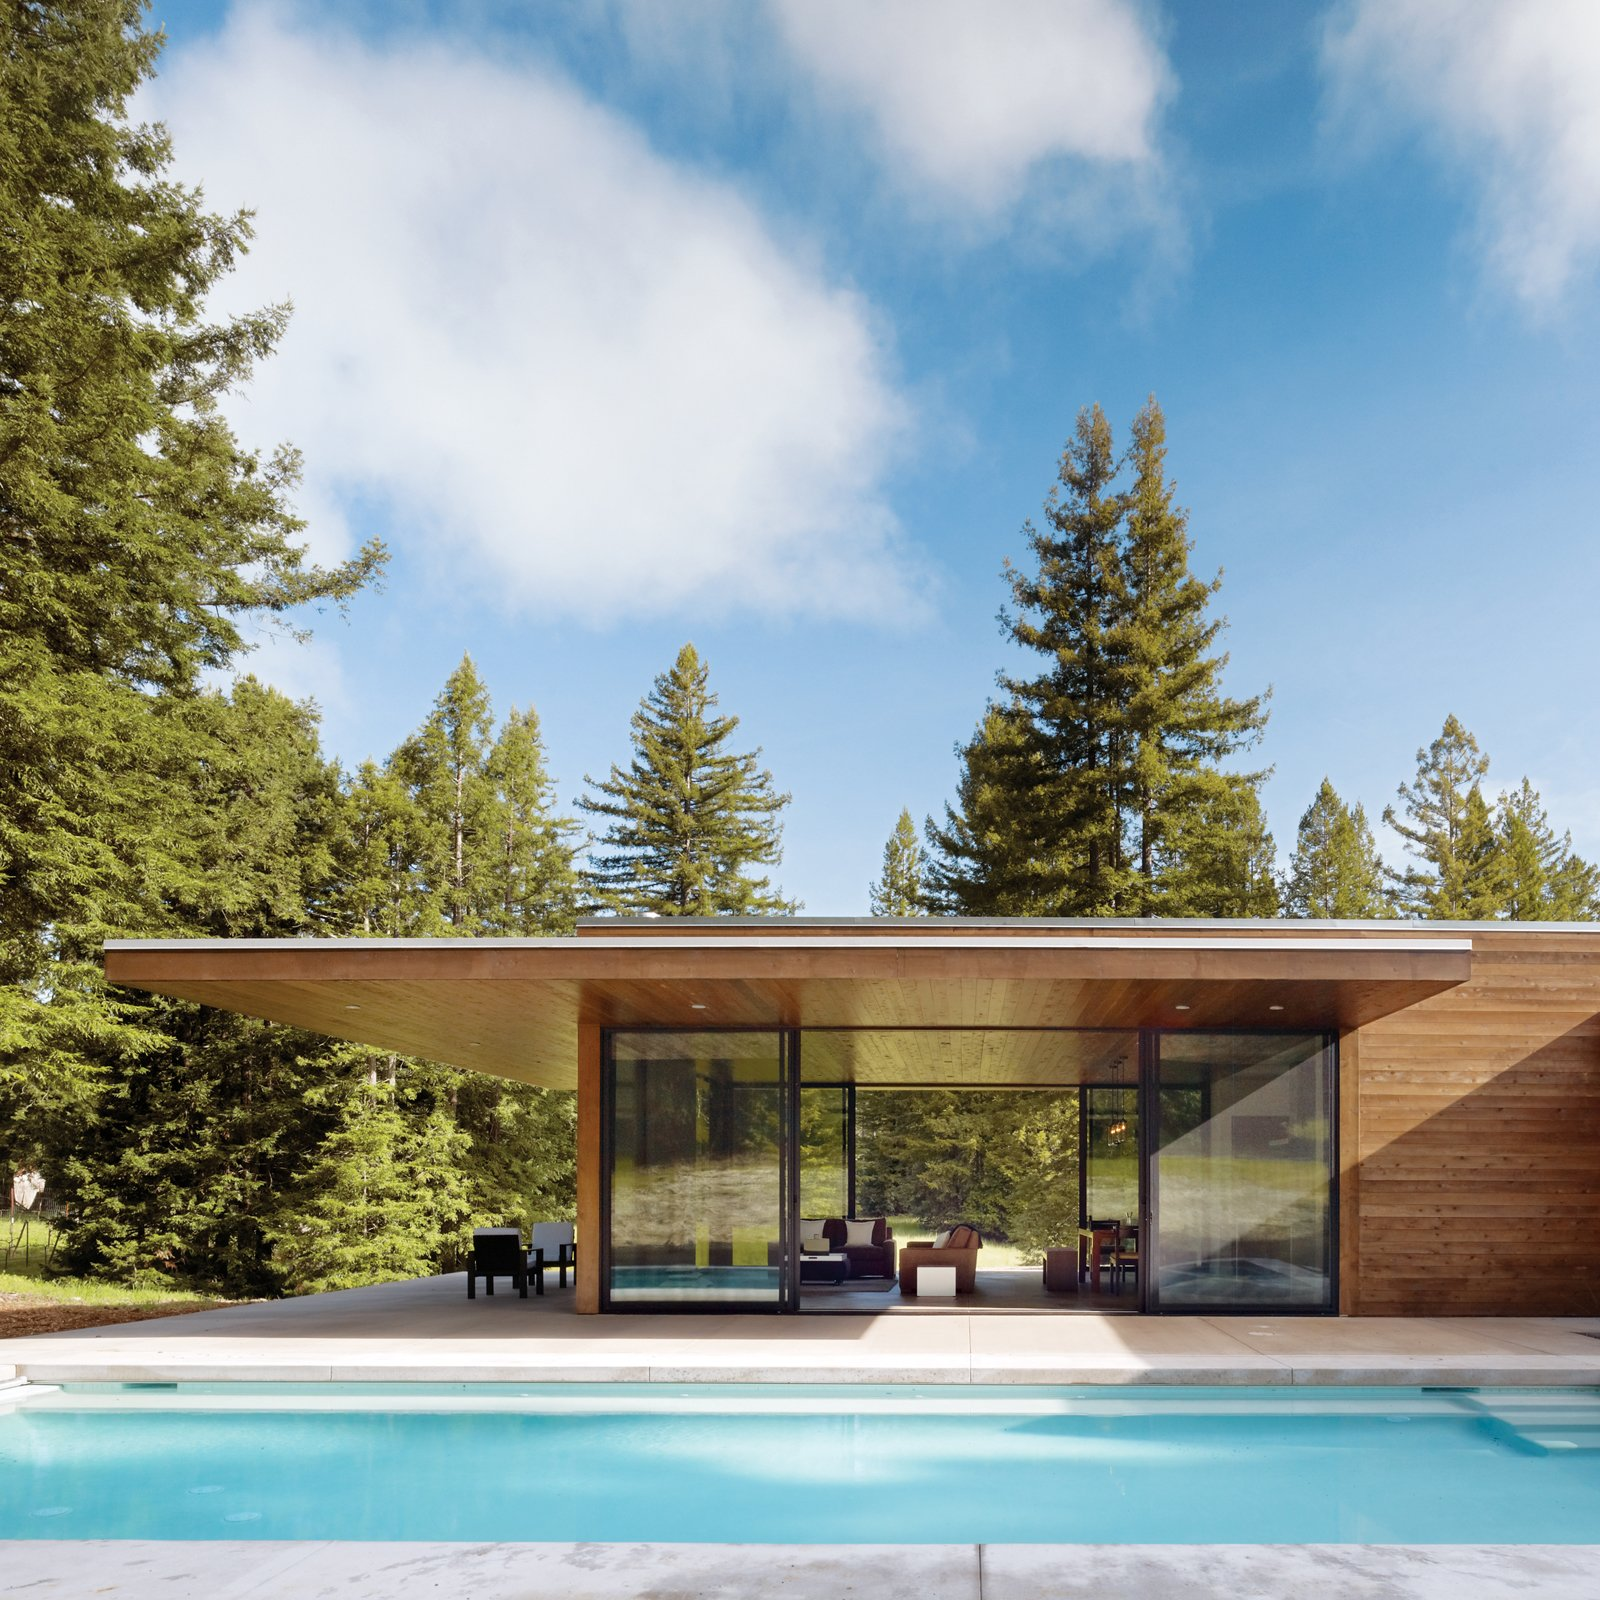 Architects Leslie and Julie Dowling, twin sisters and Michael Graves protégées, created this 1,000-square-foot, single-story home by linking two flat-roofed pavilions together in the shape of a T. The design of this Sonoma County home was inspired by Philip Johnson's 1949 Glass House in New Canaan, Connecticut.  Photo 15 of 16 in Guide to 7 Main Types of Roofs and What You Need to Know About Them from Pools to Dive Into